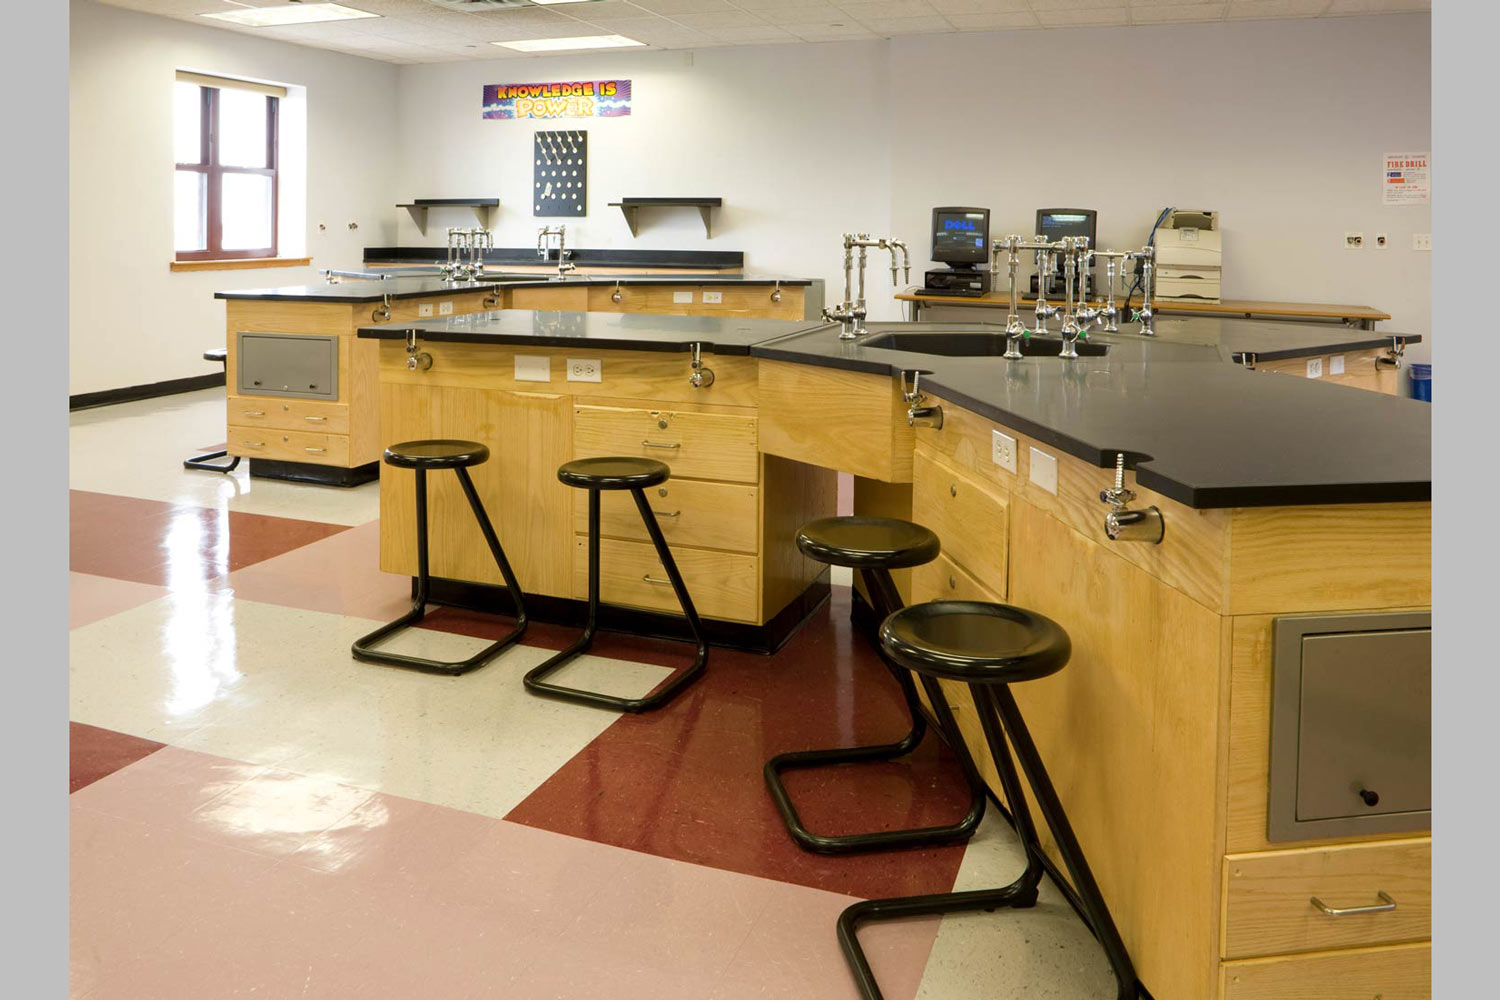 Science lab at the Acorn High School for Social Justice. Project by OCV Architects.